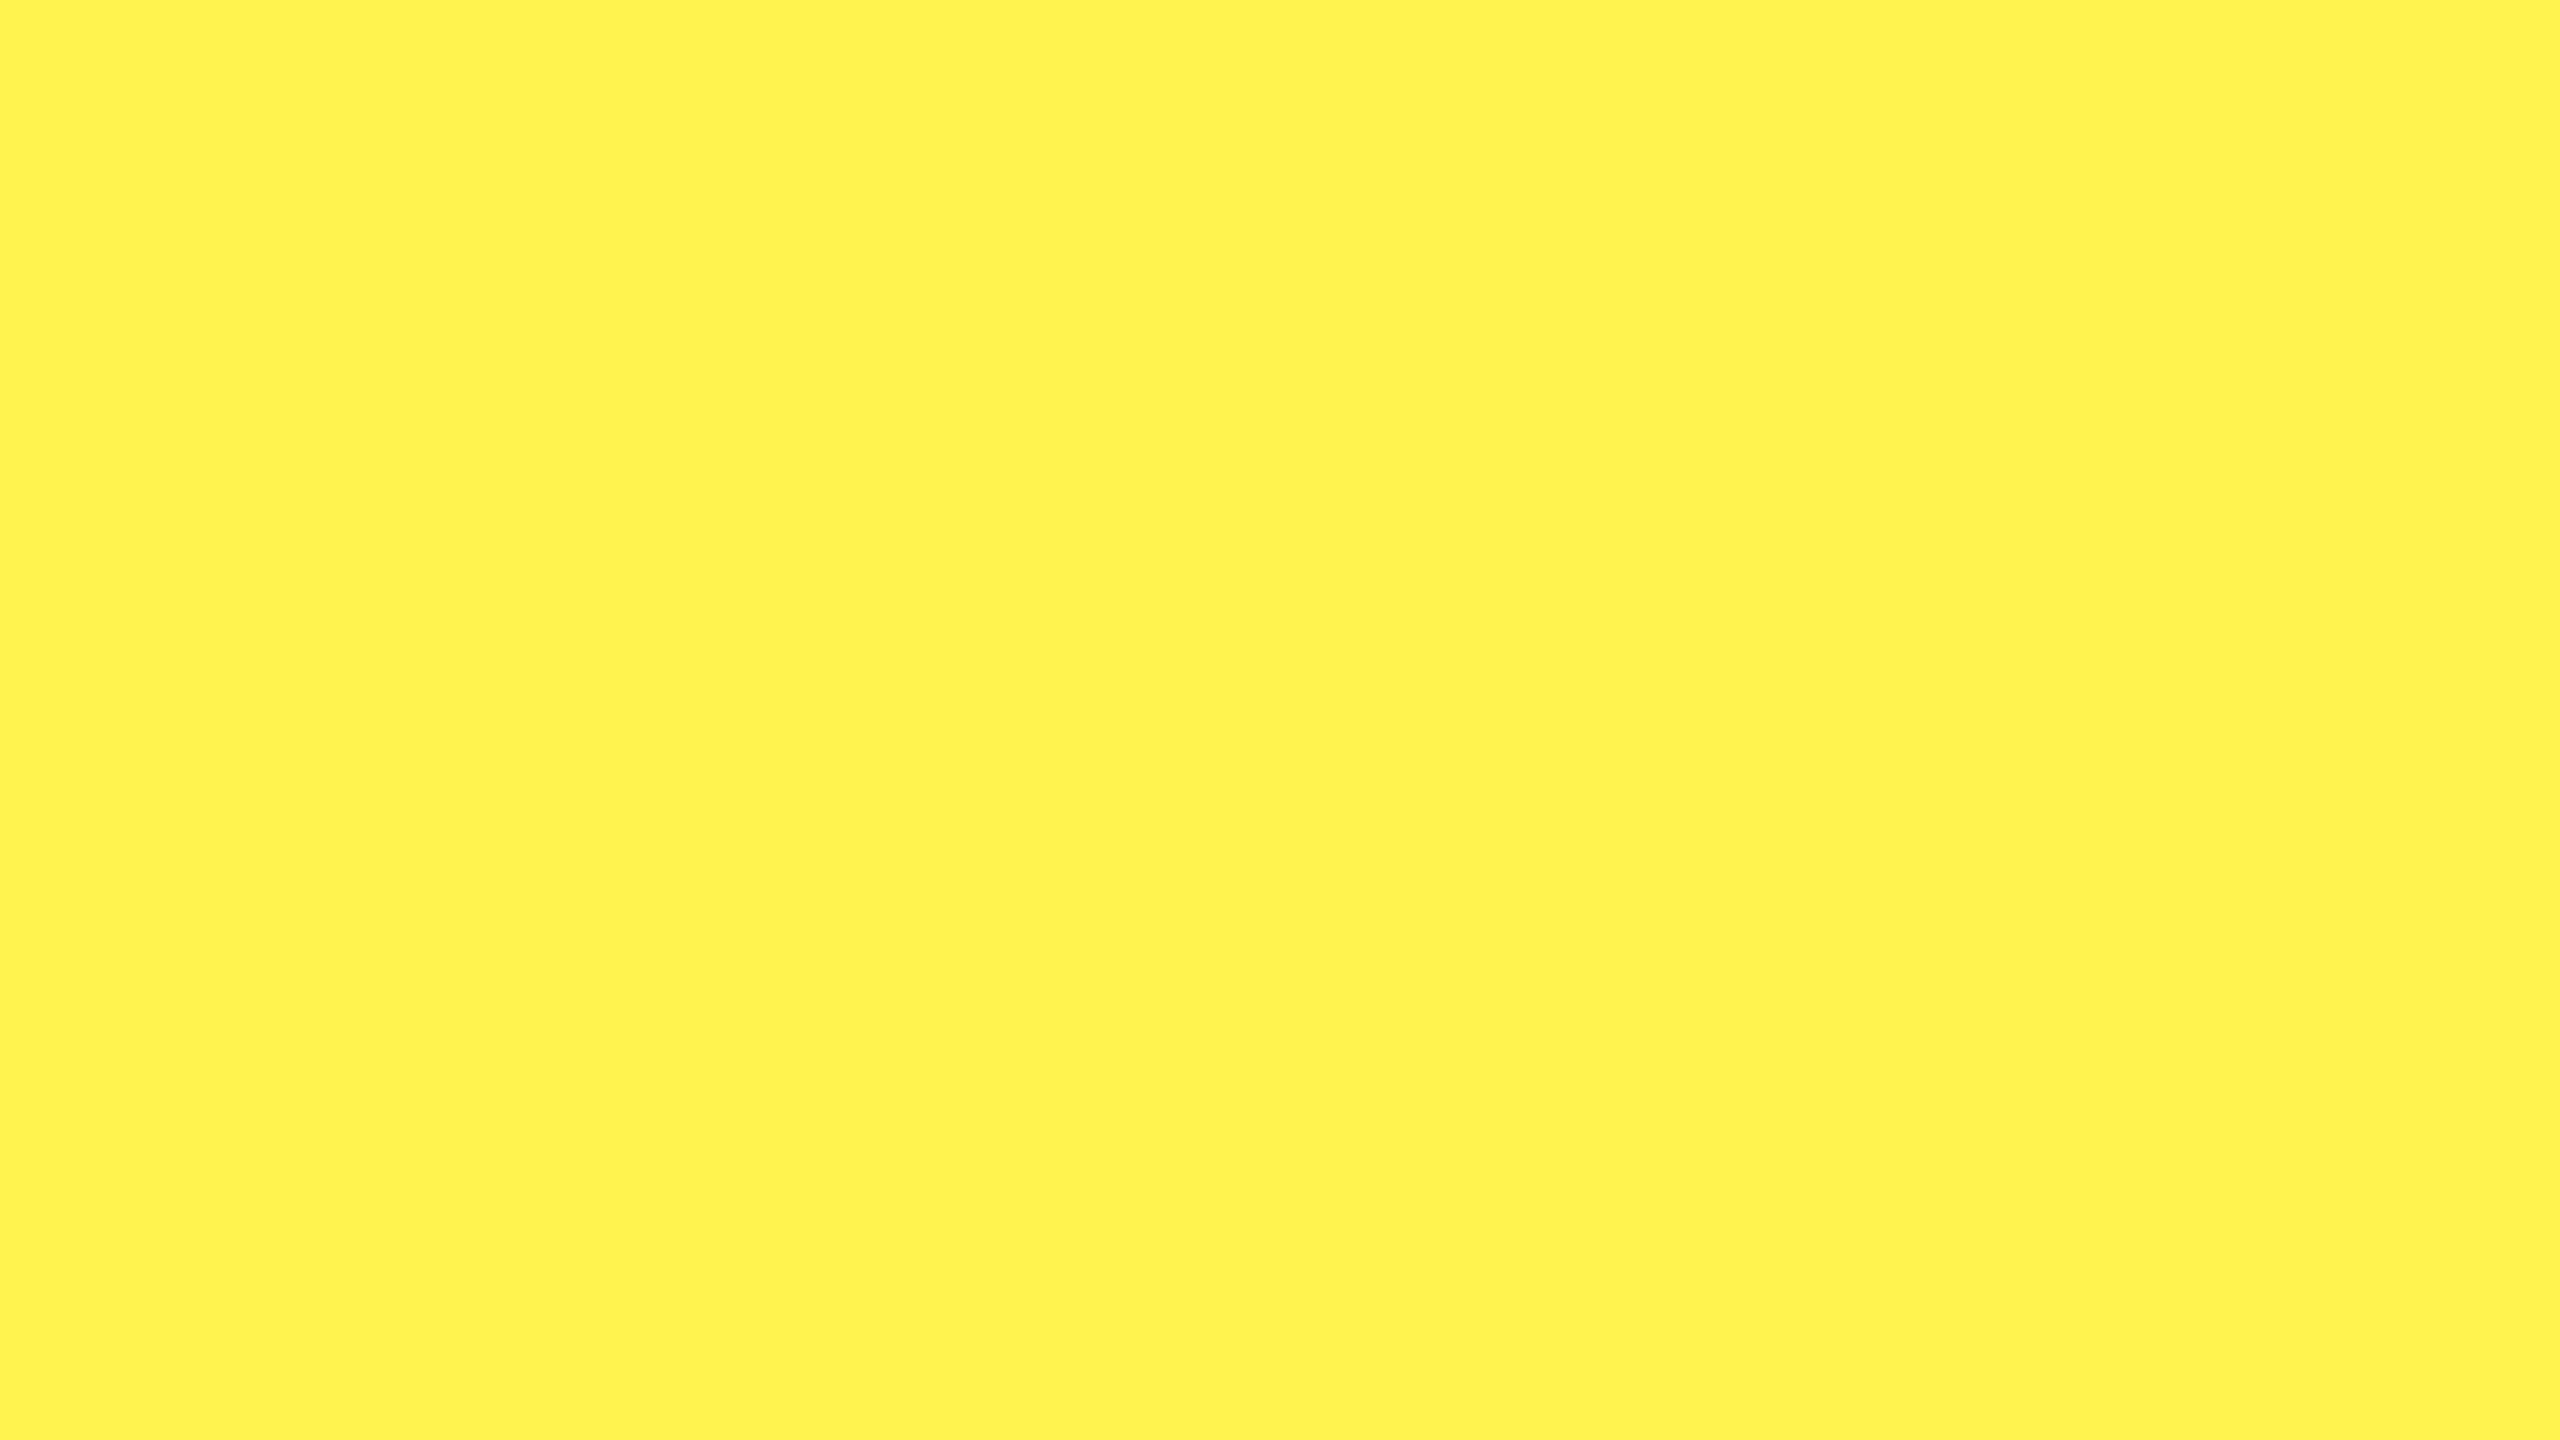 2560x1440 Lemon Yellow Solid Color Background